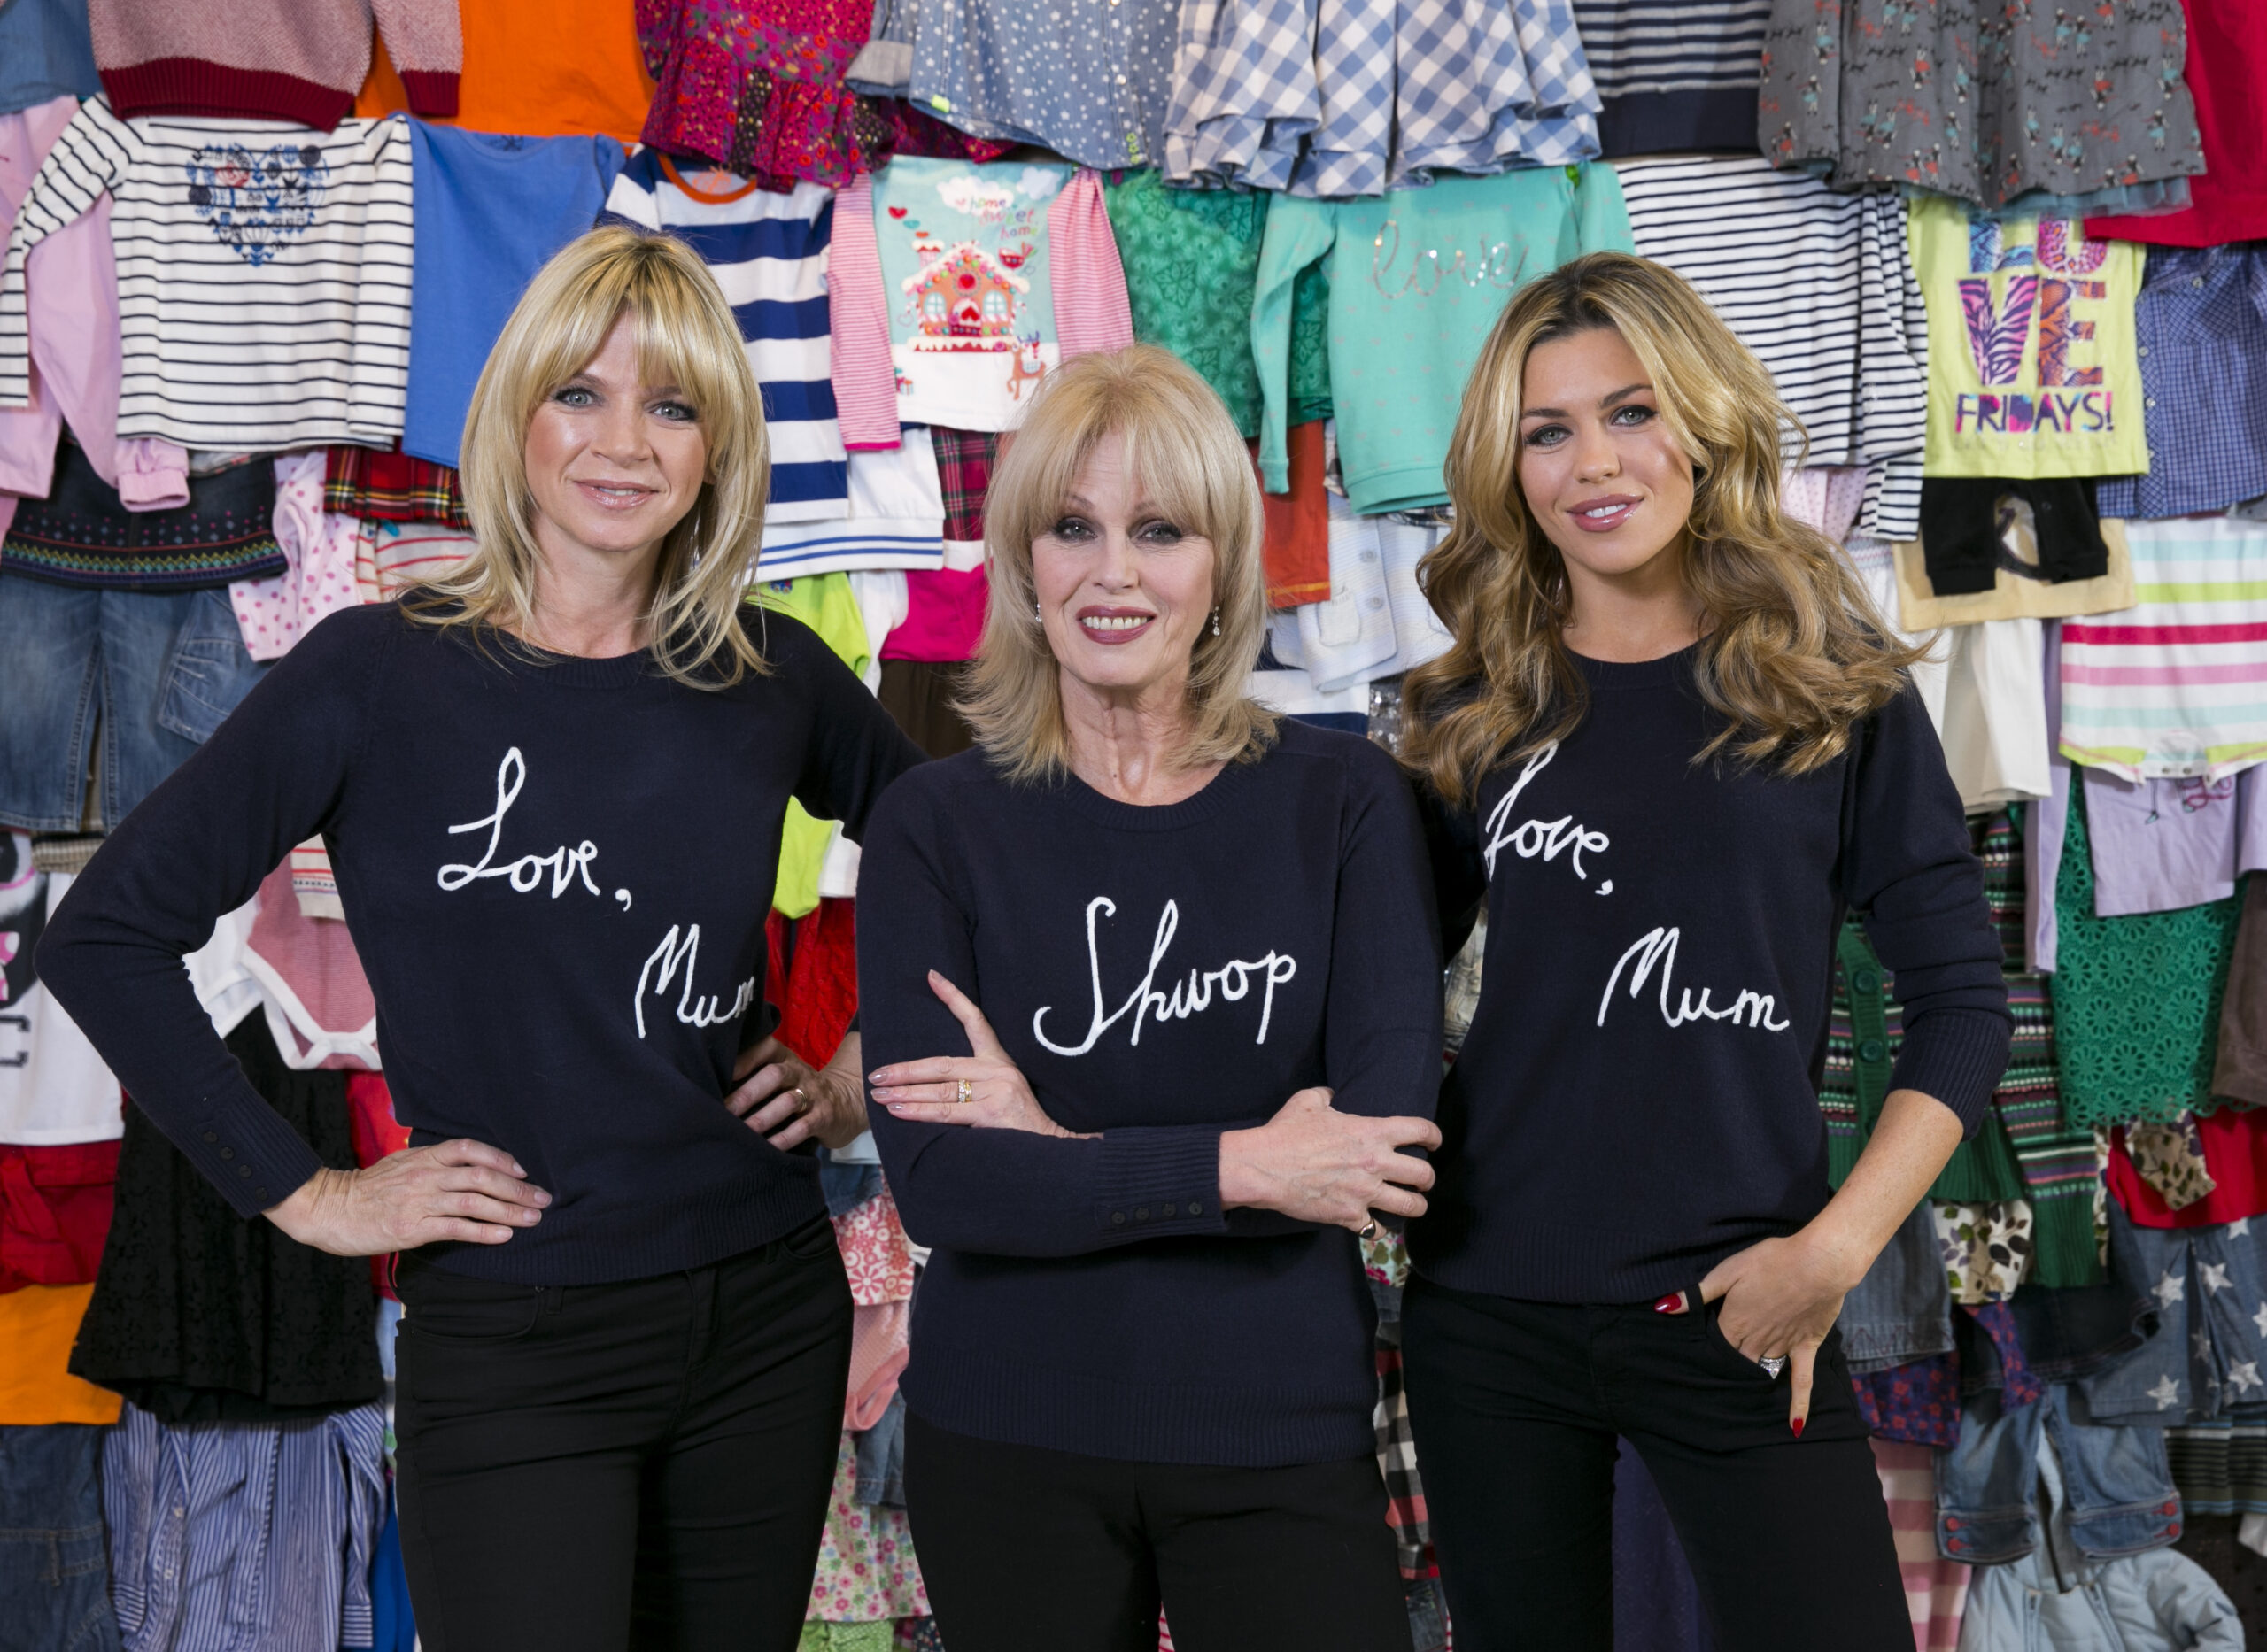 Joanna Lumley, Zoe Ball and Abbey Clancy join forces to launch the new 'Love, Mum' Shwopping campaign